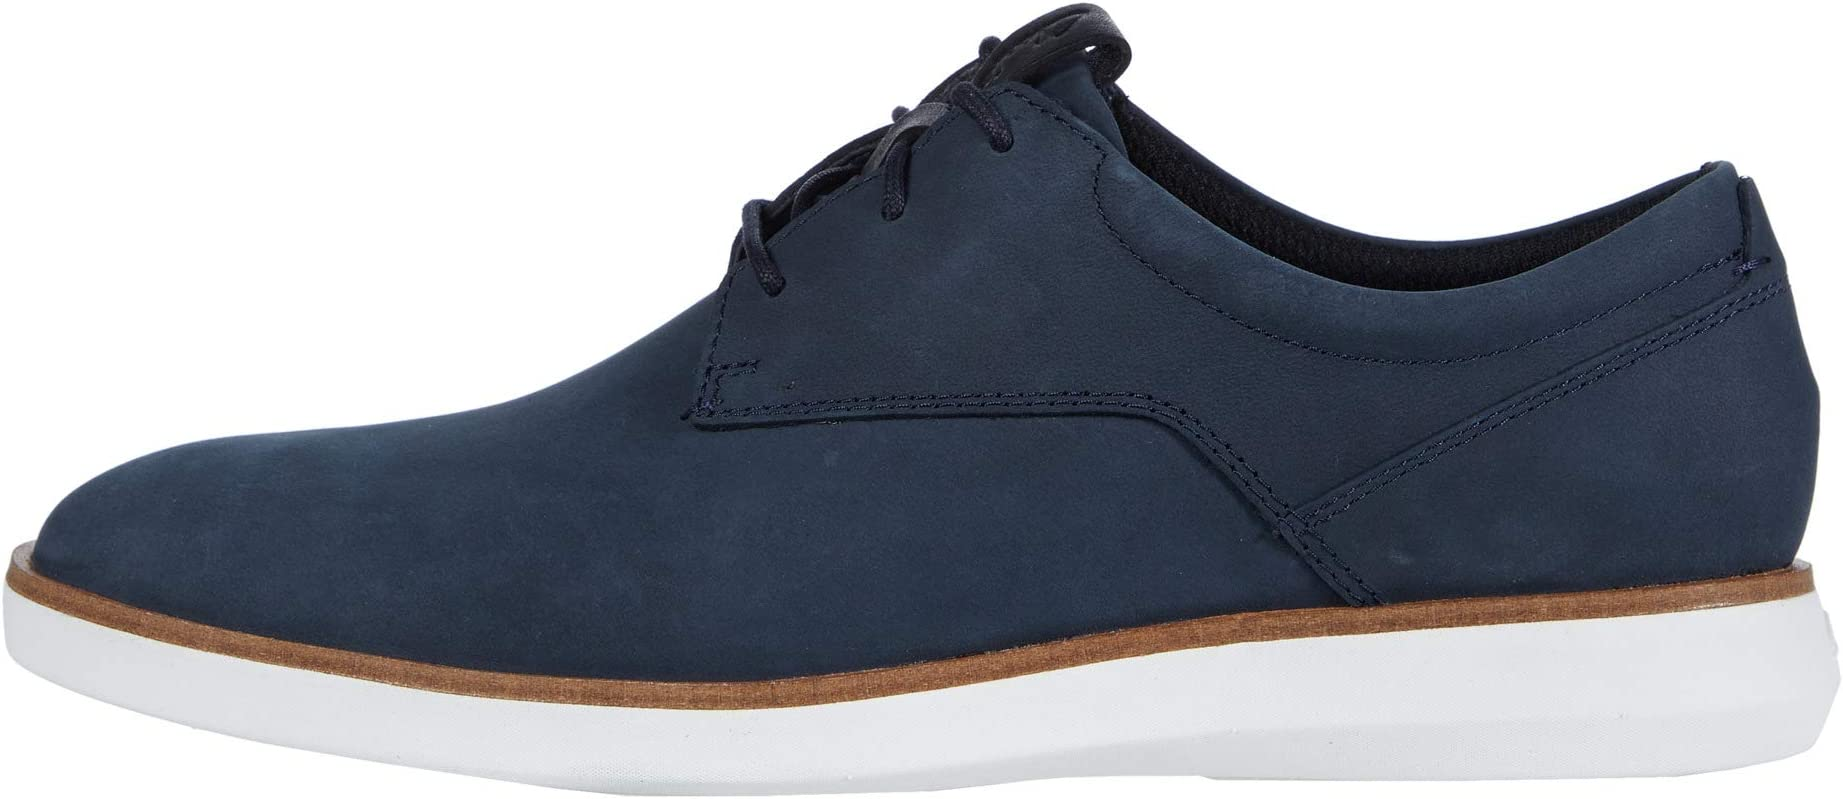 Clarks Banwell Lace | Men's shoes | 2020 Newest